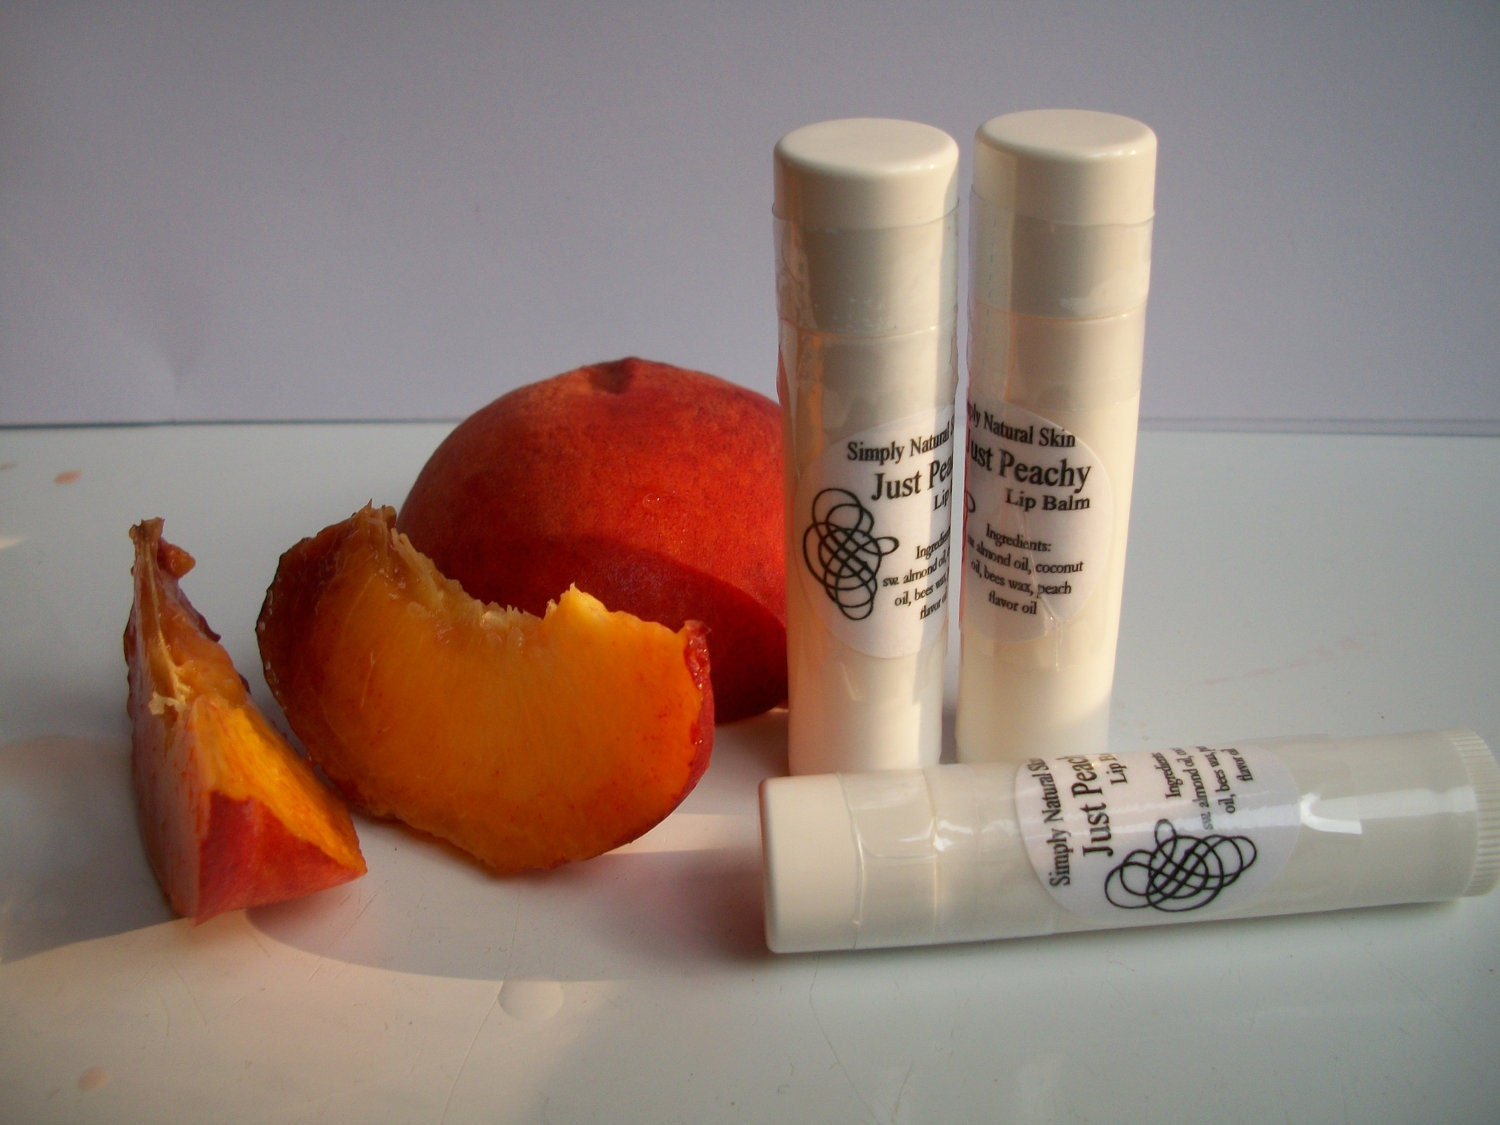 Just Peachy - Lip Balm - Three tubes